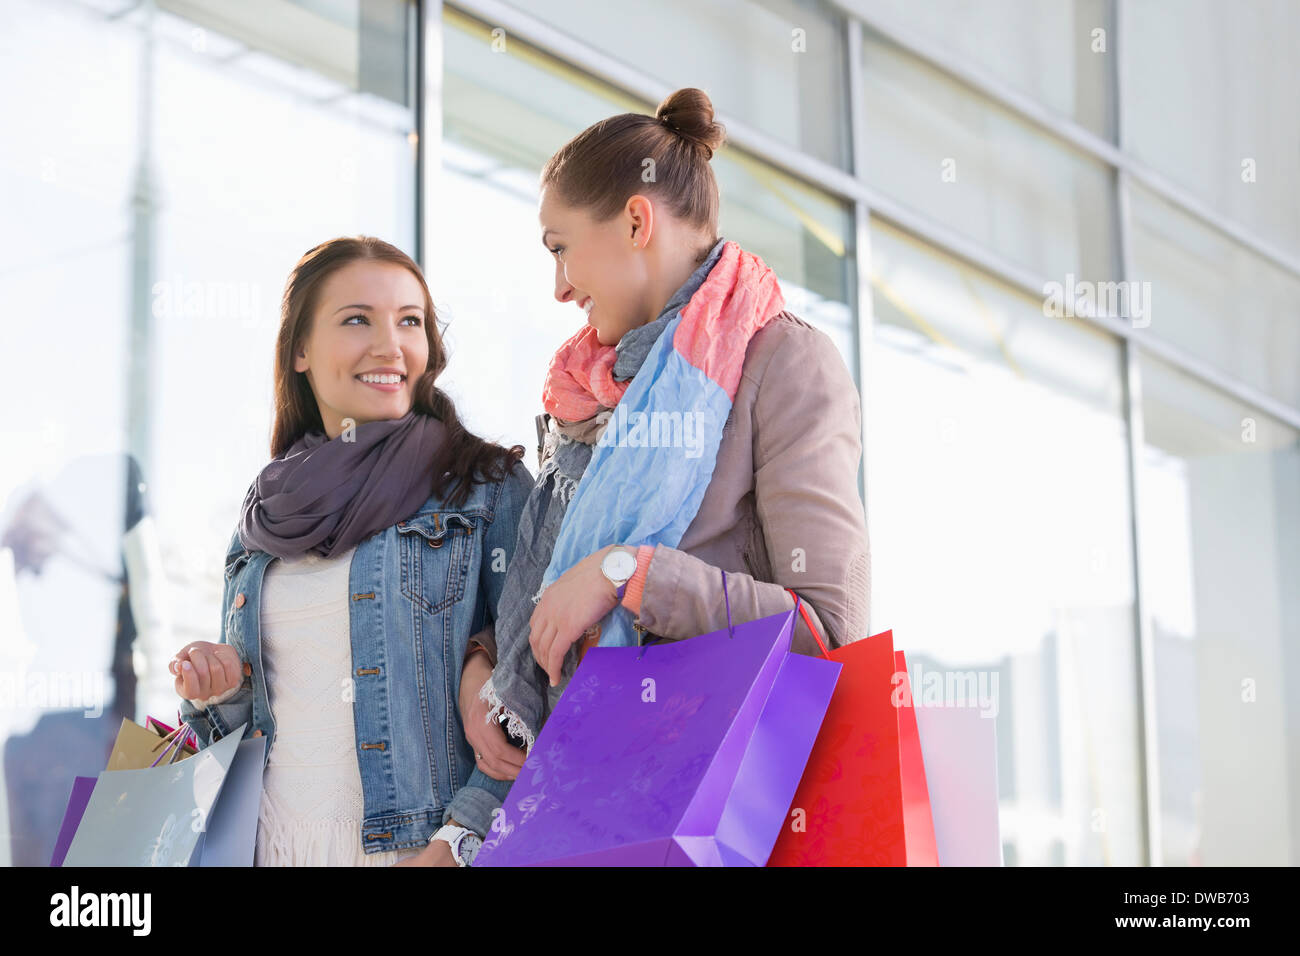 Young female friends looking at each other against store - Stock Image